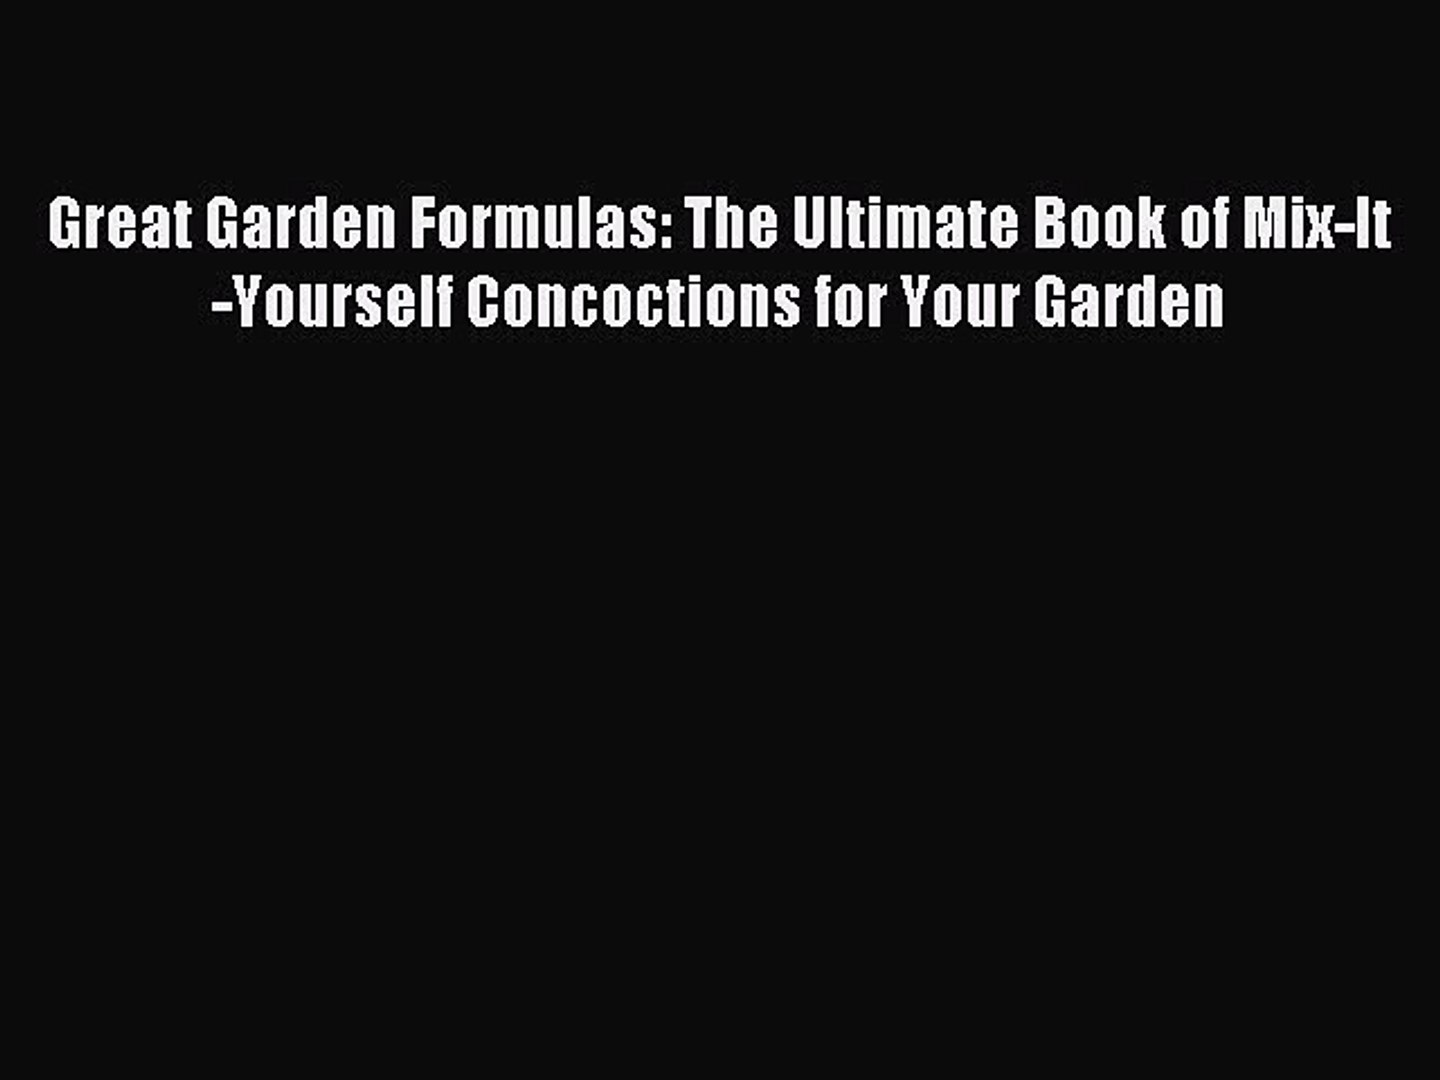 Read Great Garden Formulas: The Ultimate Book of Mix-It-Yourself Concoctions for Your Garden